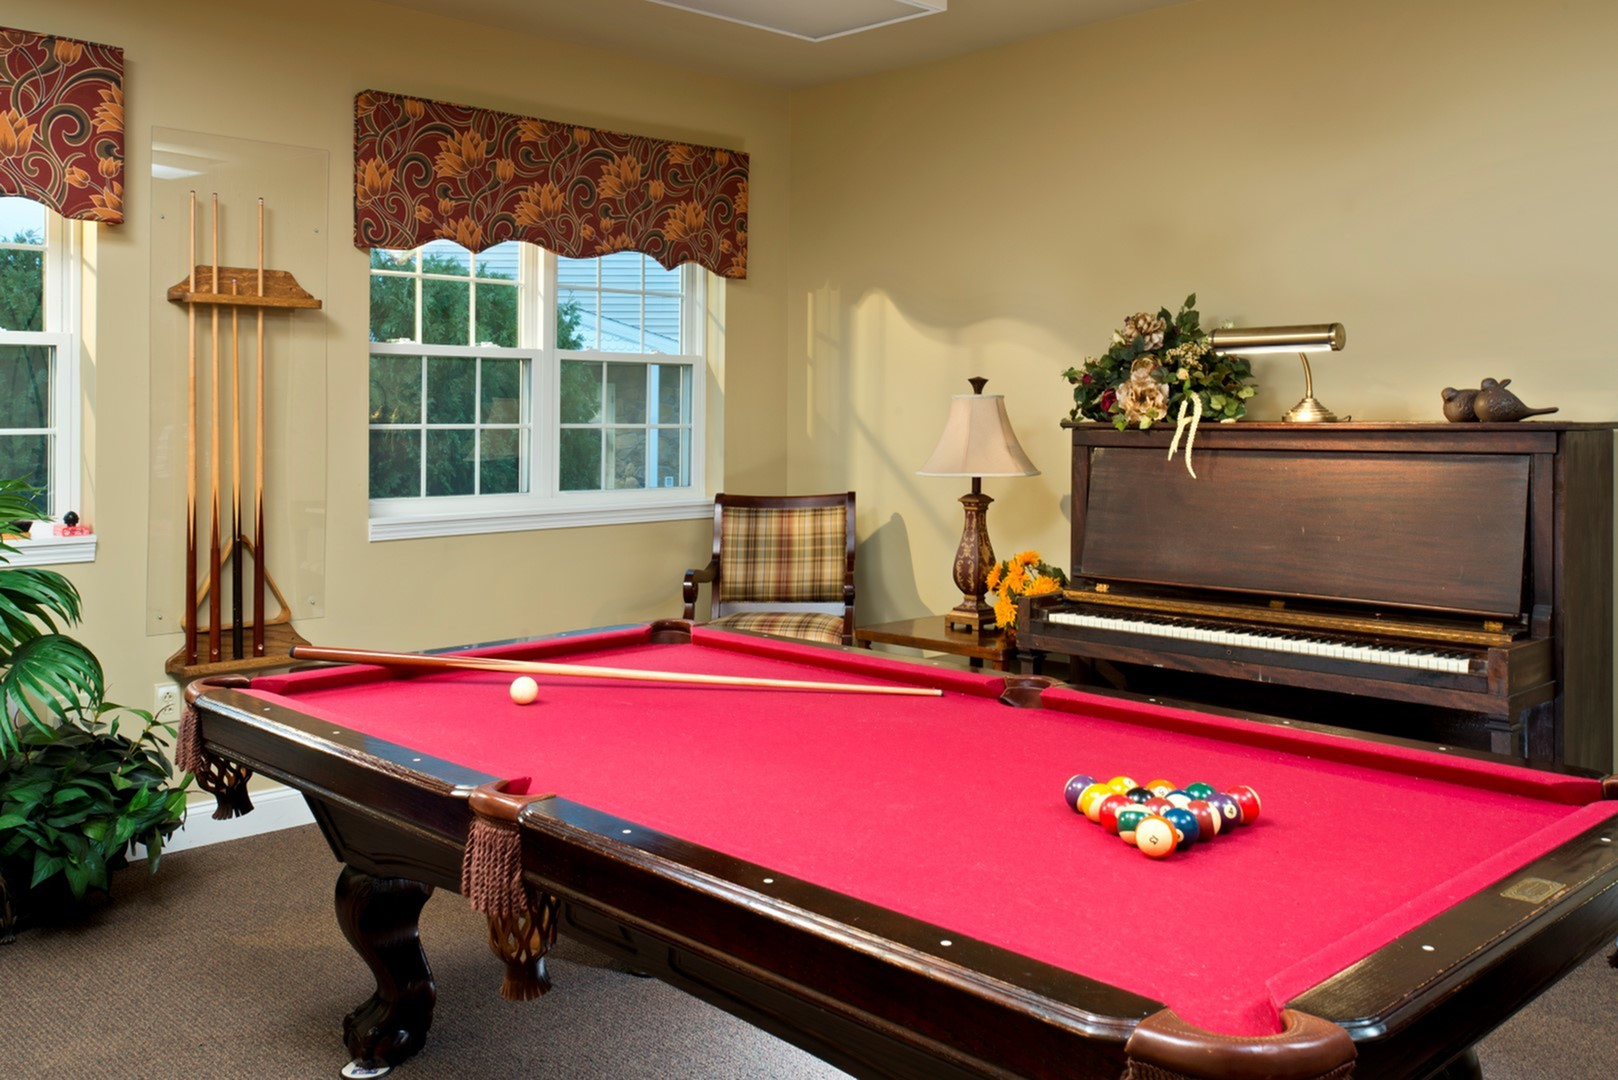 Hearthstone Village billiard room